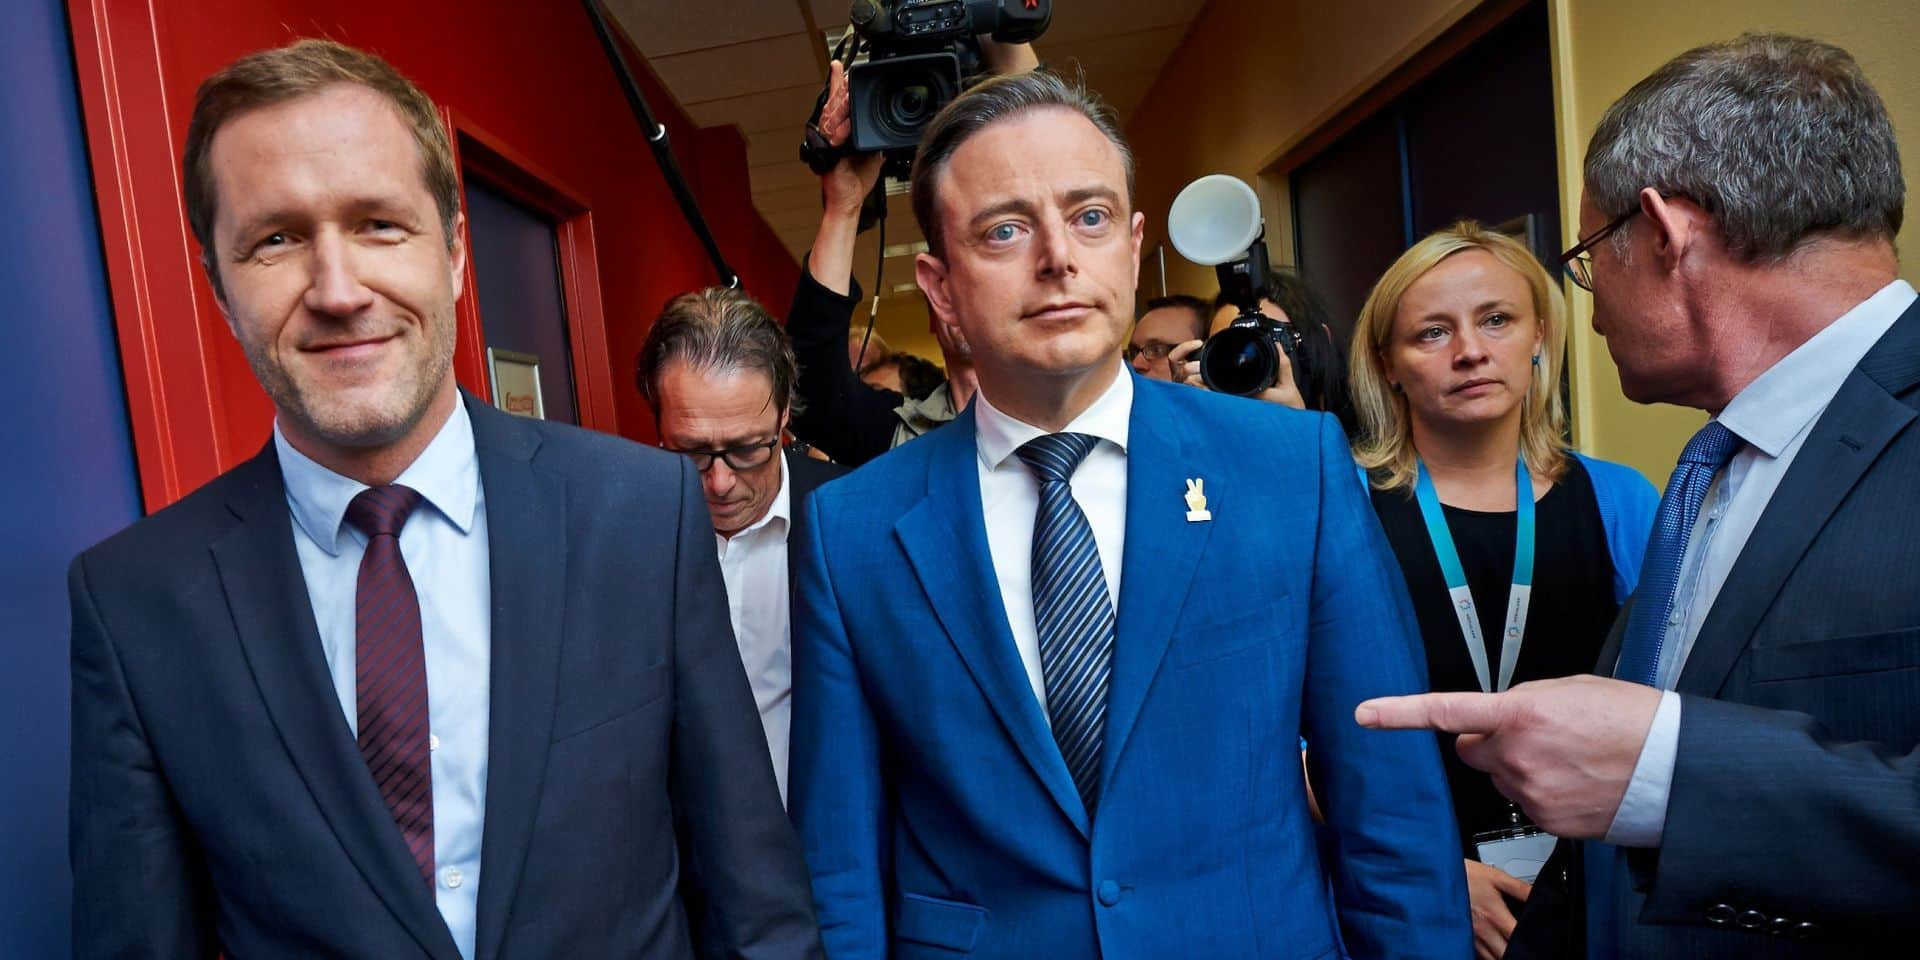 Bart De Wever et Paul Magnette examinent leur collaboration